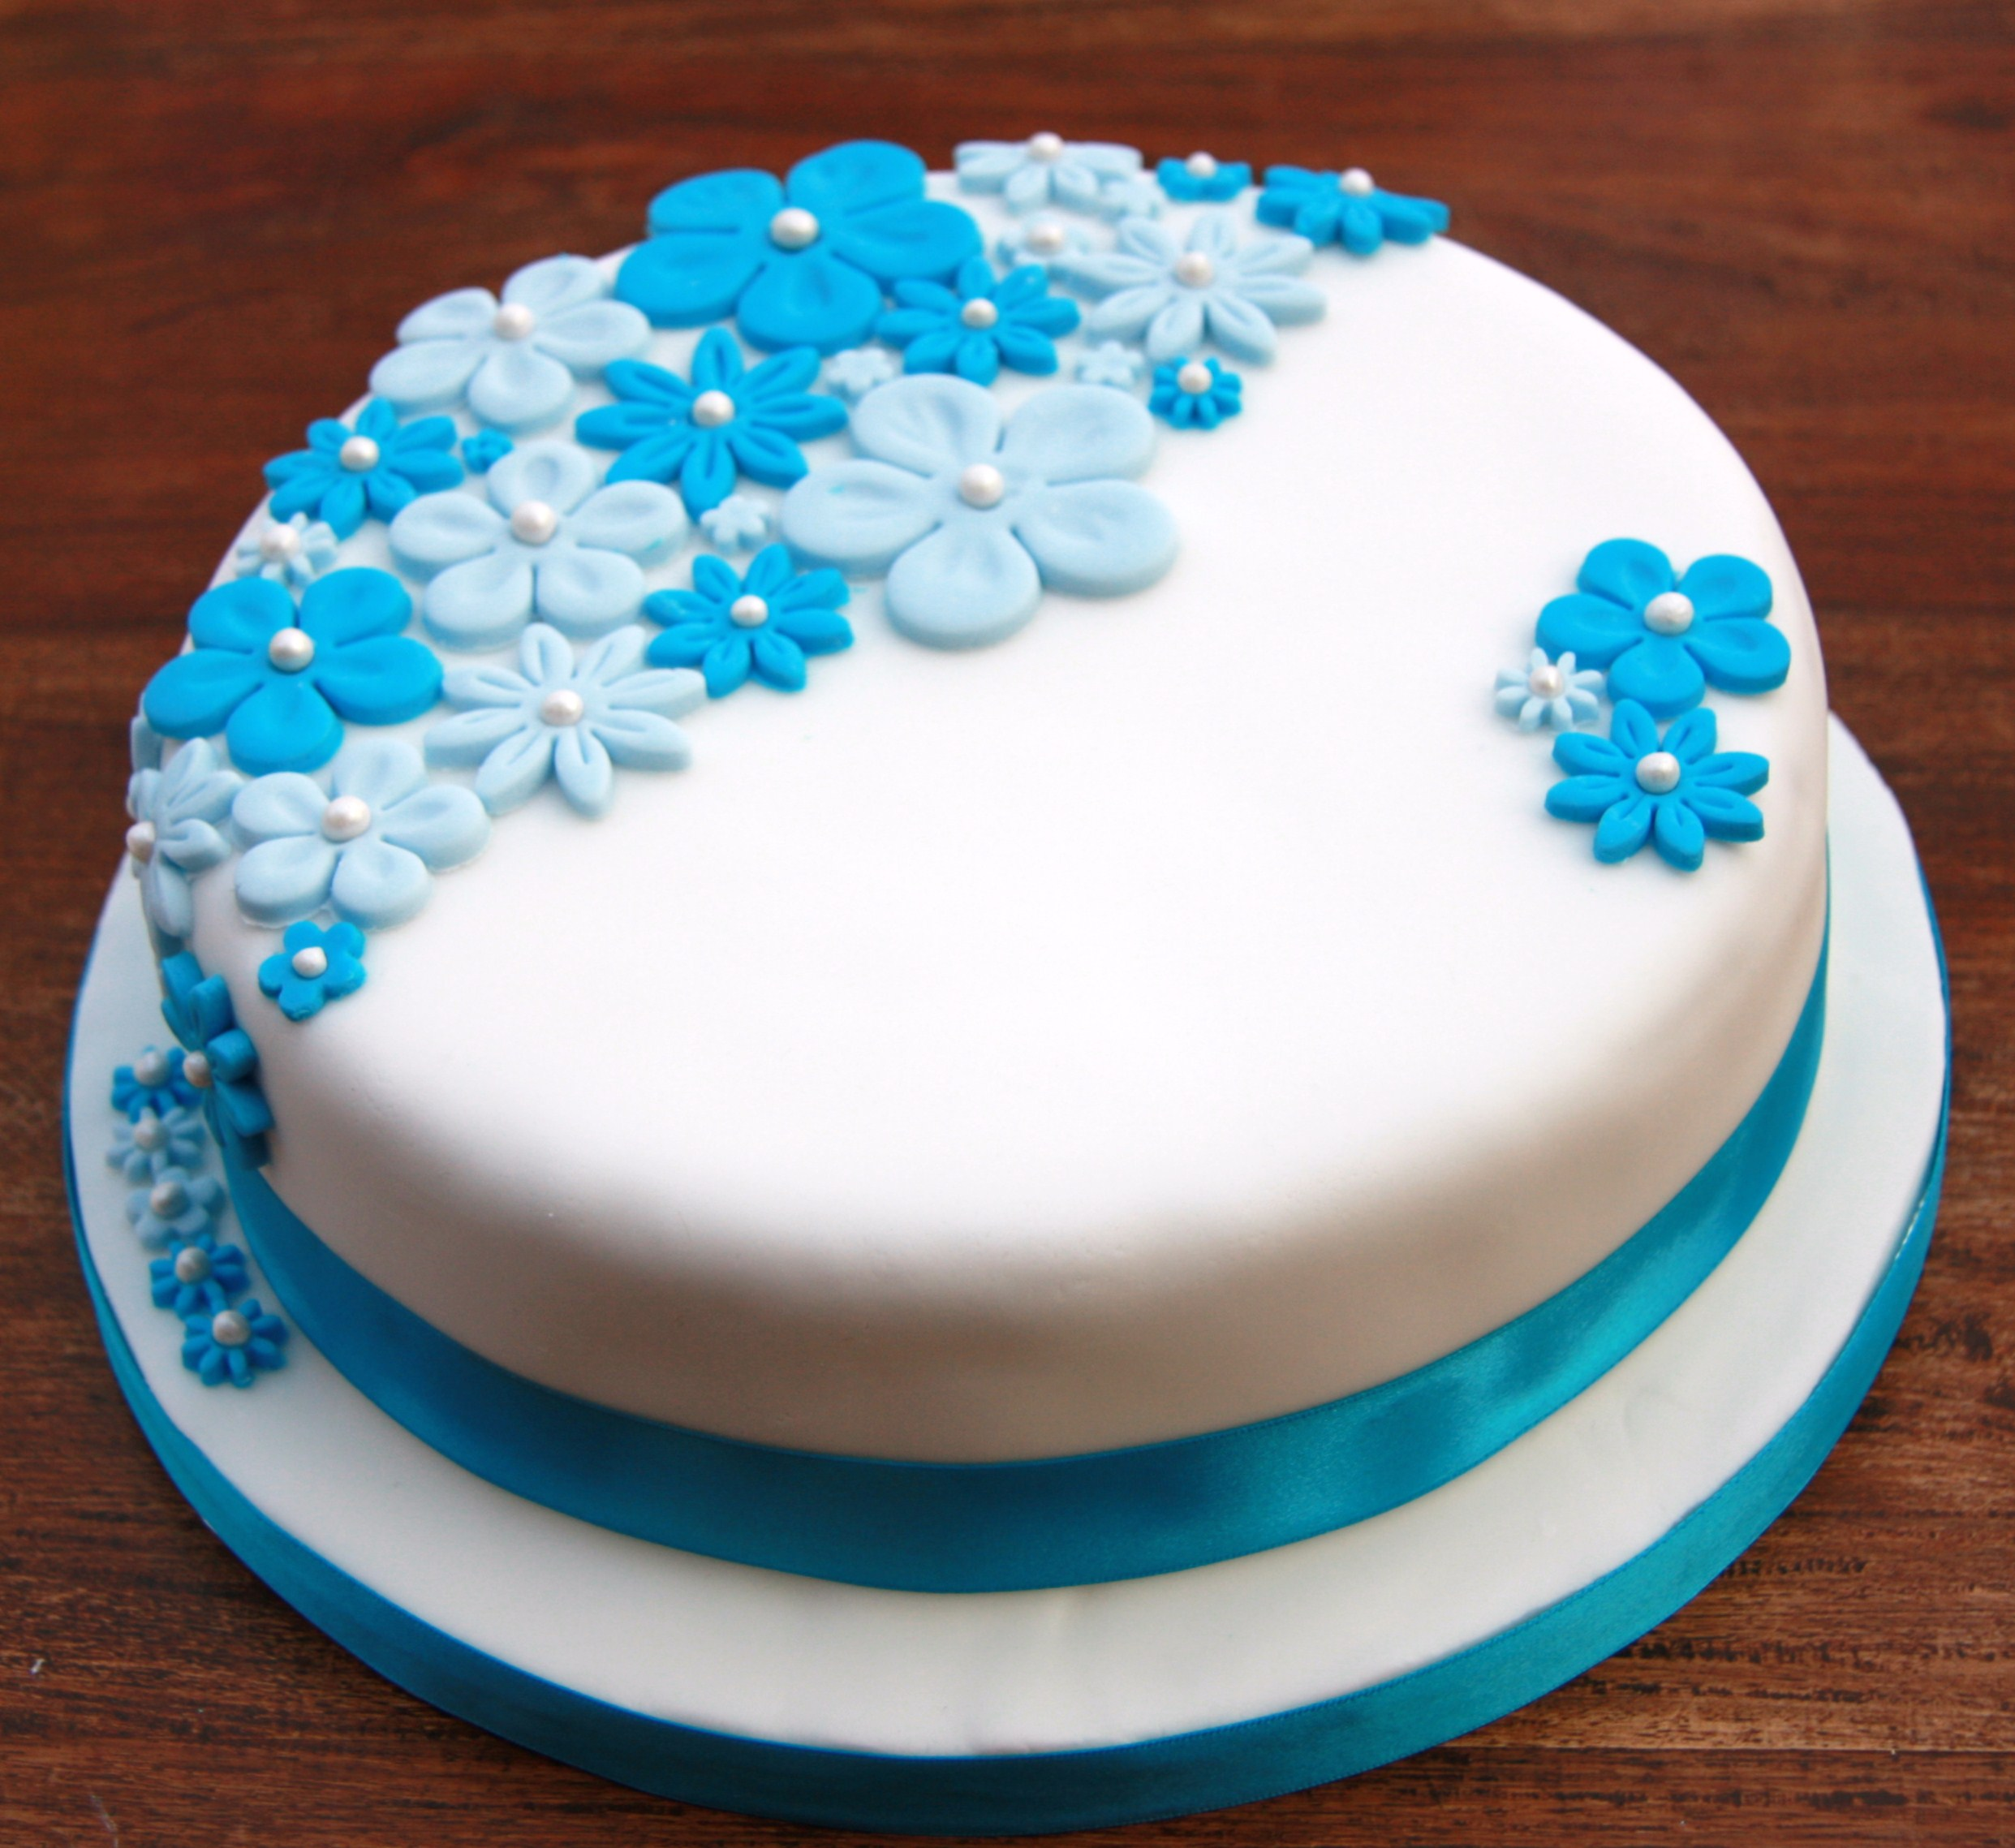 Mums birthday cake blog lovinghomemade blue flower birthday cake izmirmasajfo